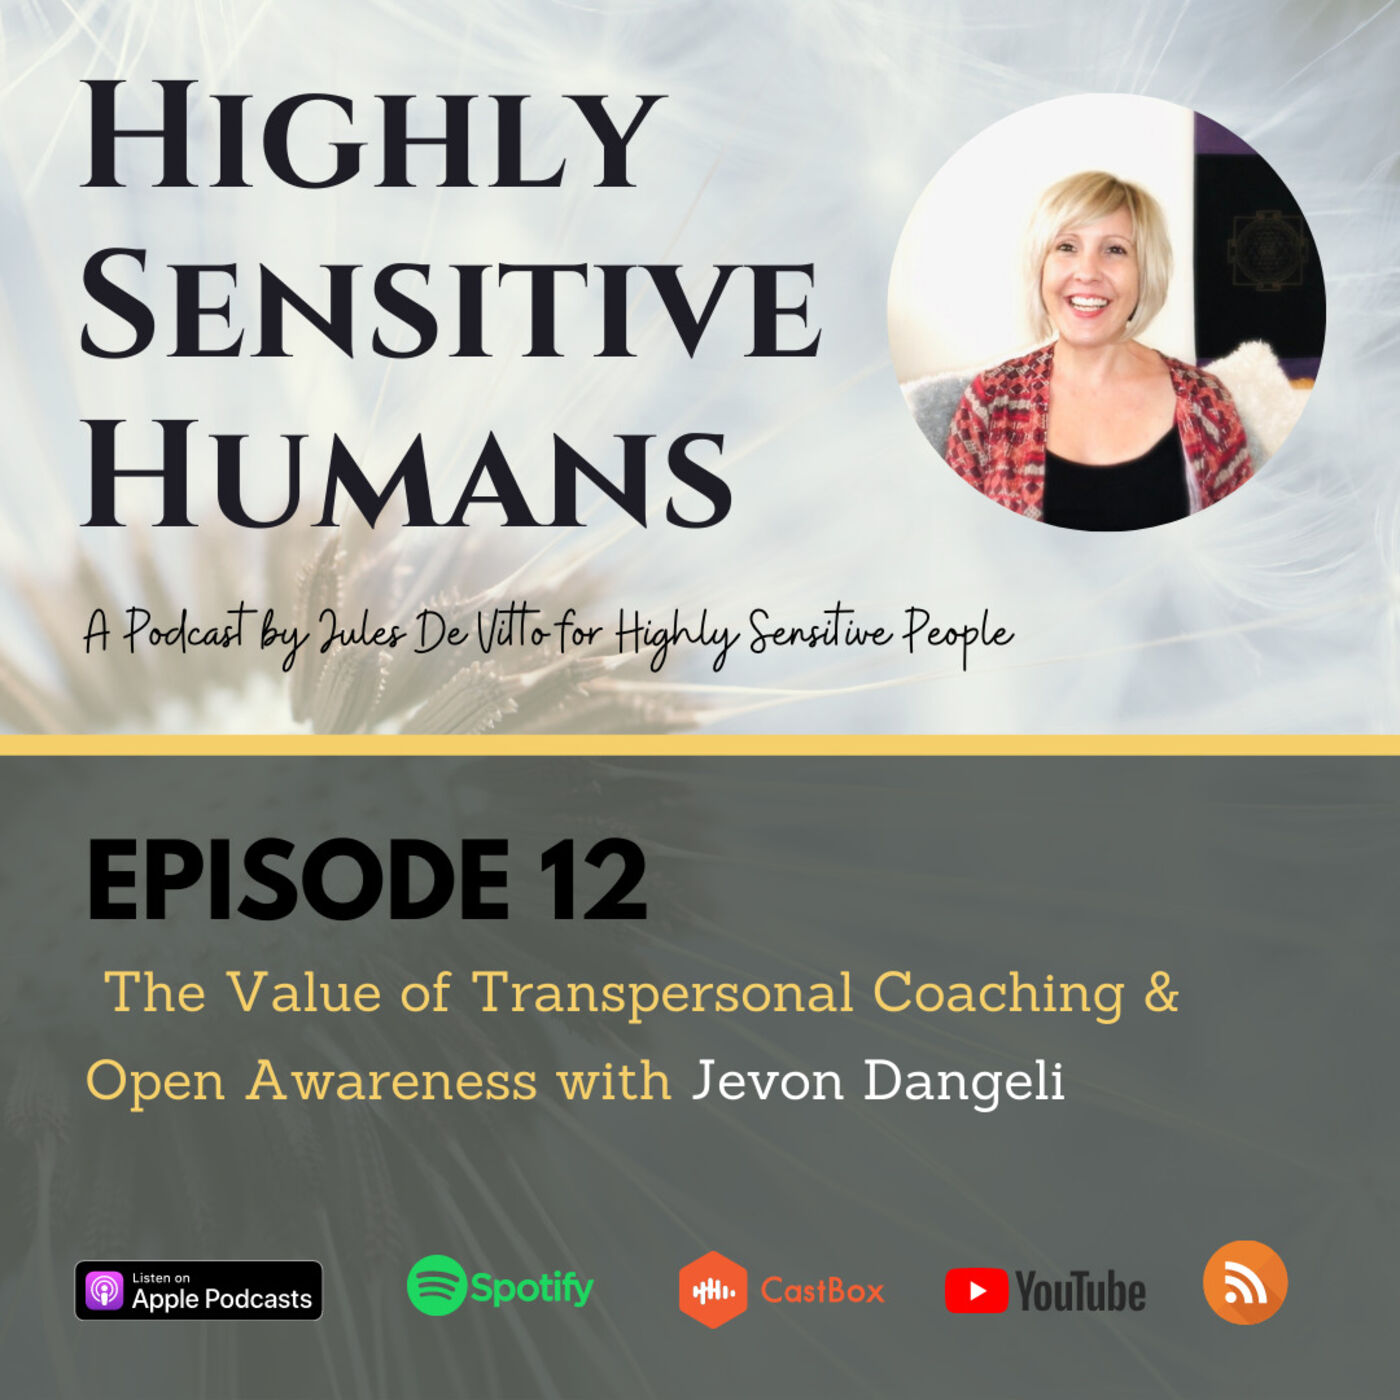 The Value of Transpersonal Coaching & Open Awareness for Highly Sensitive People